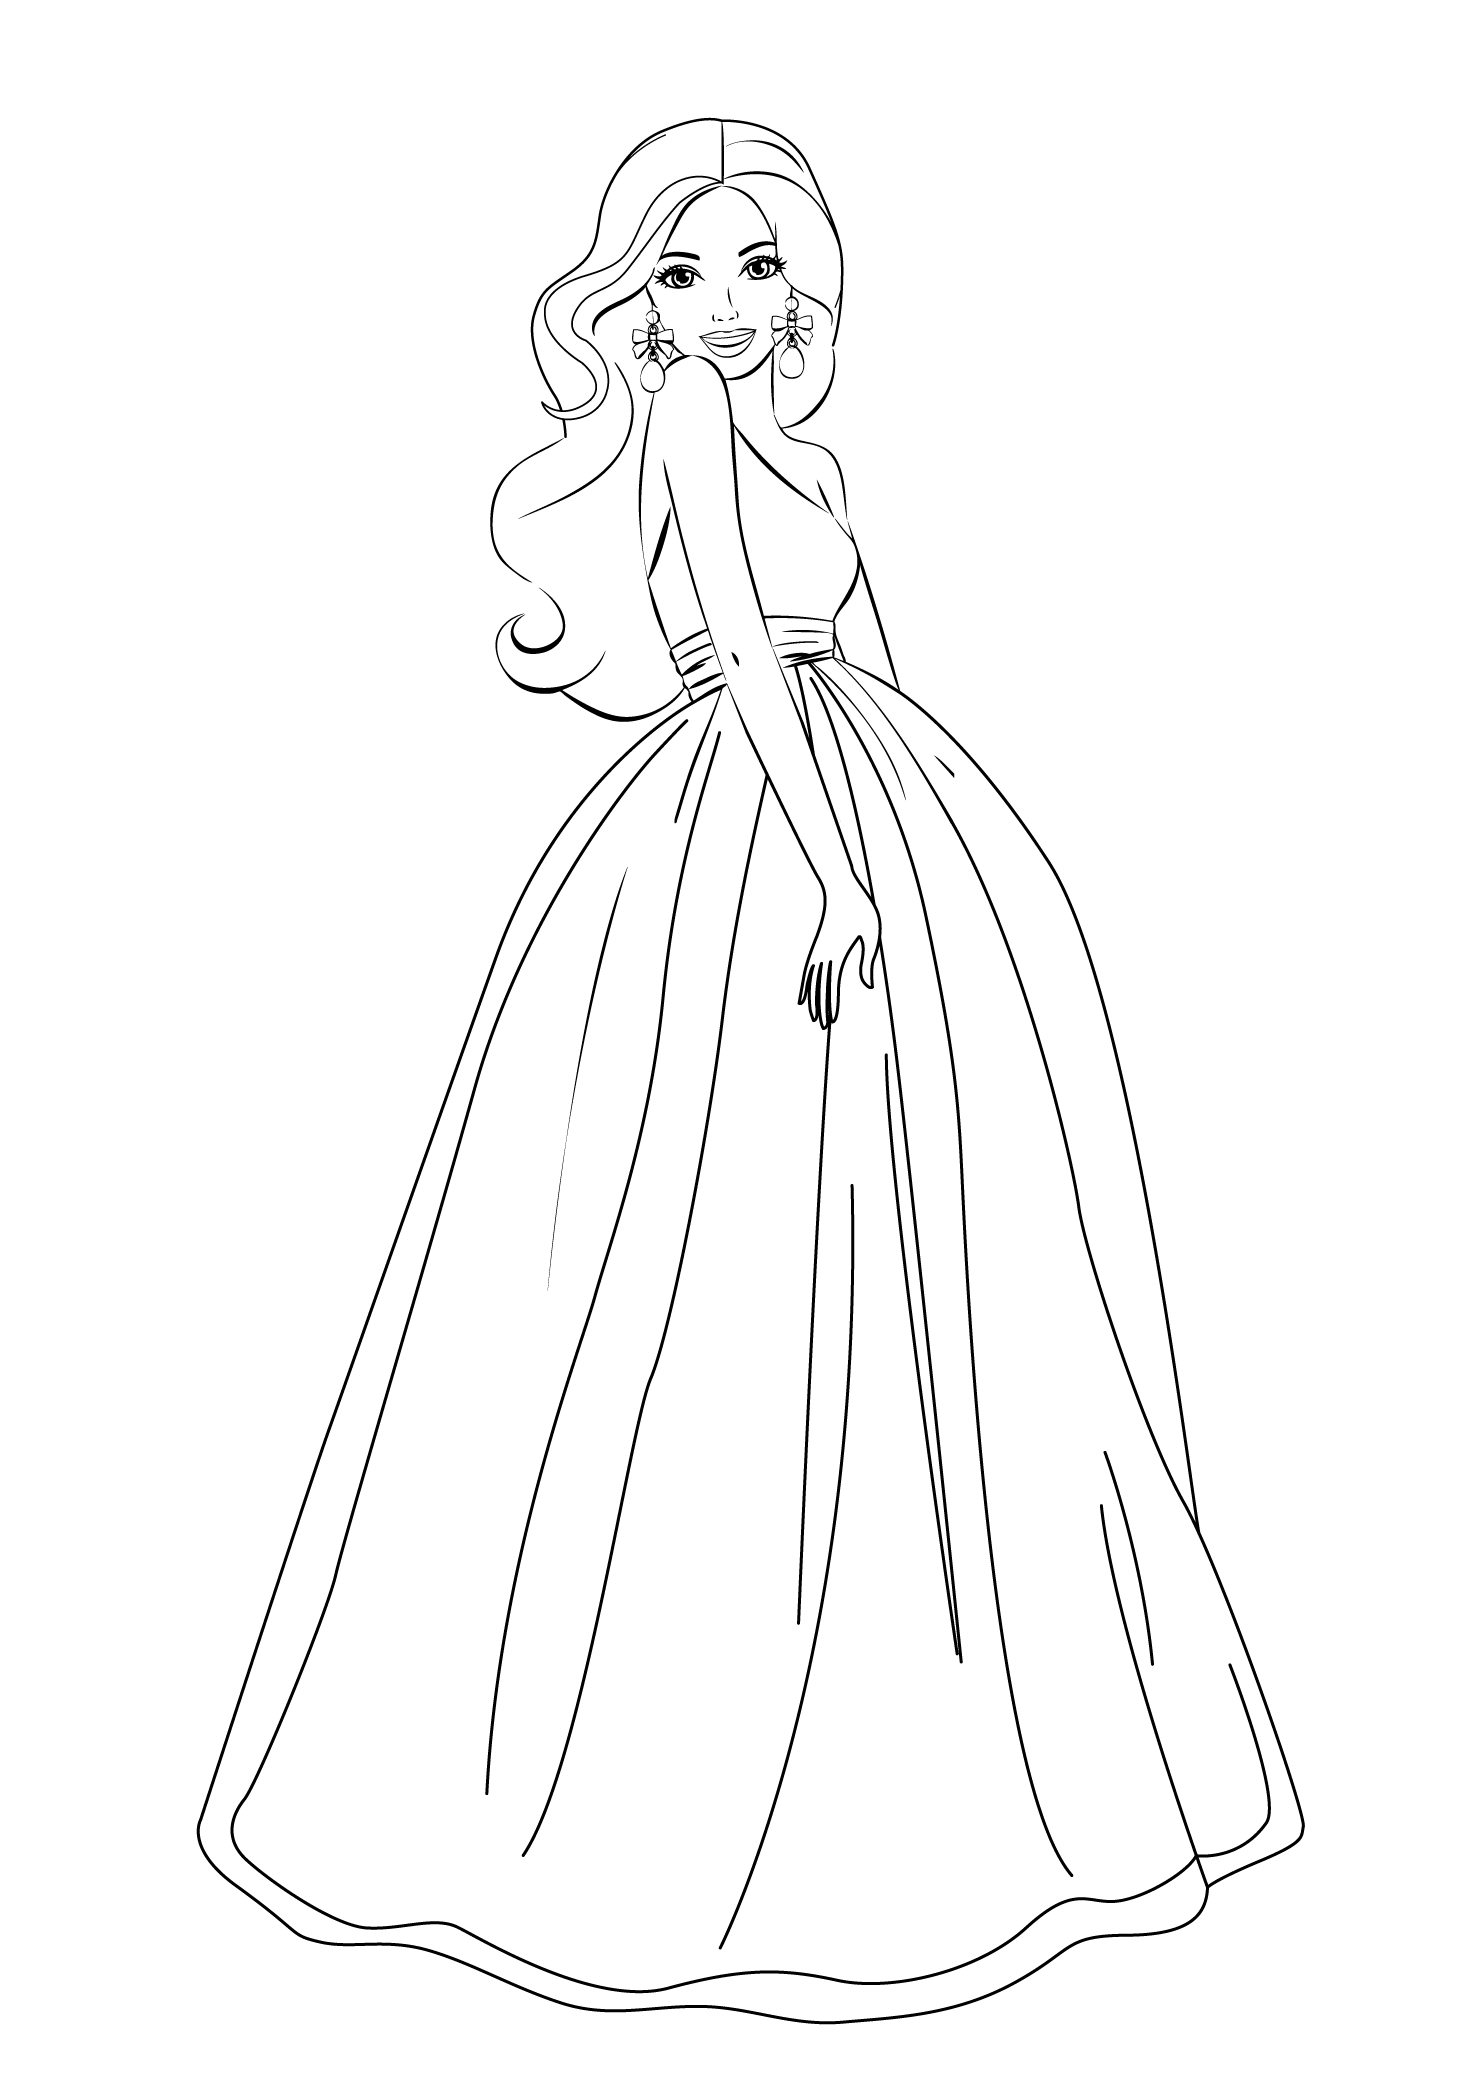 Free coloring pages that you color online - Barbie Coloring Pages For Girls Free Printable